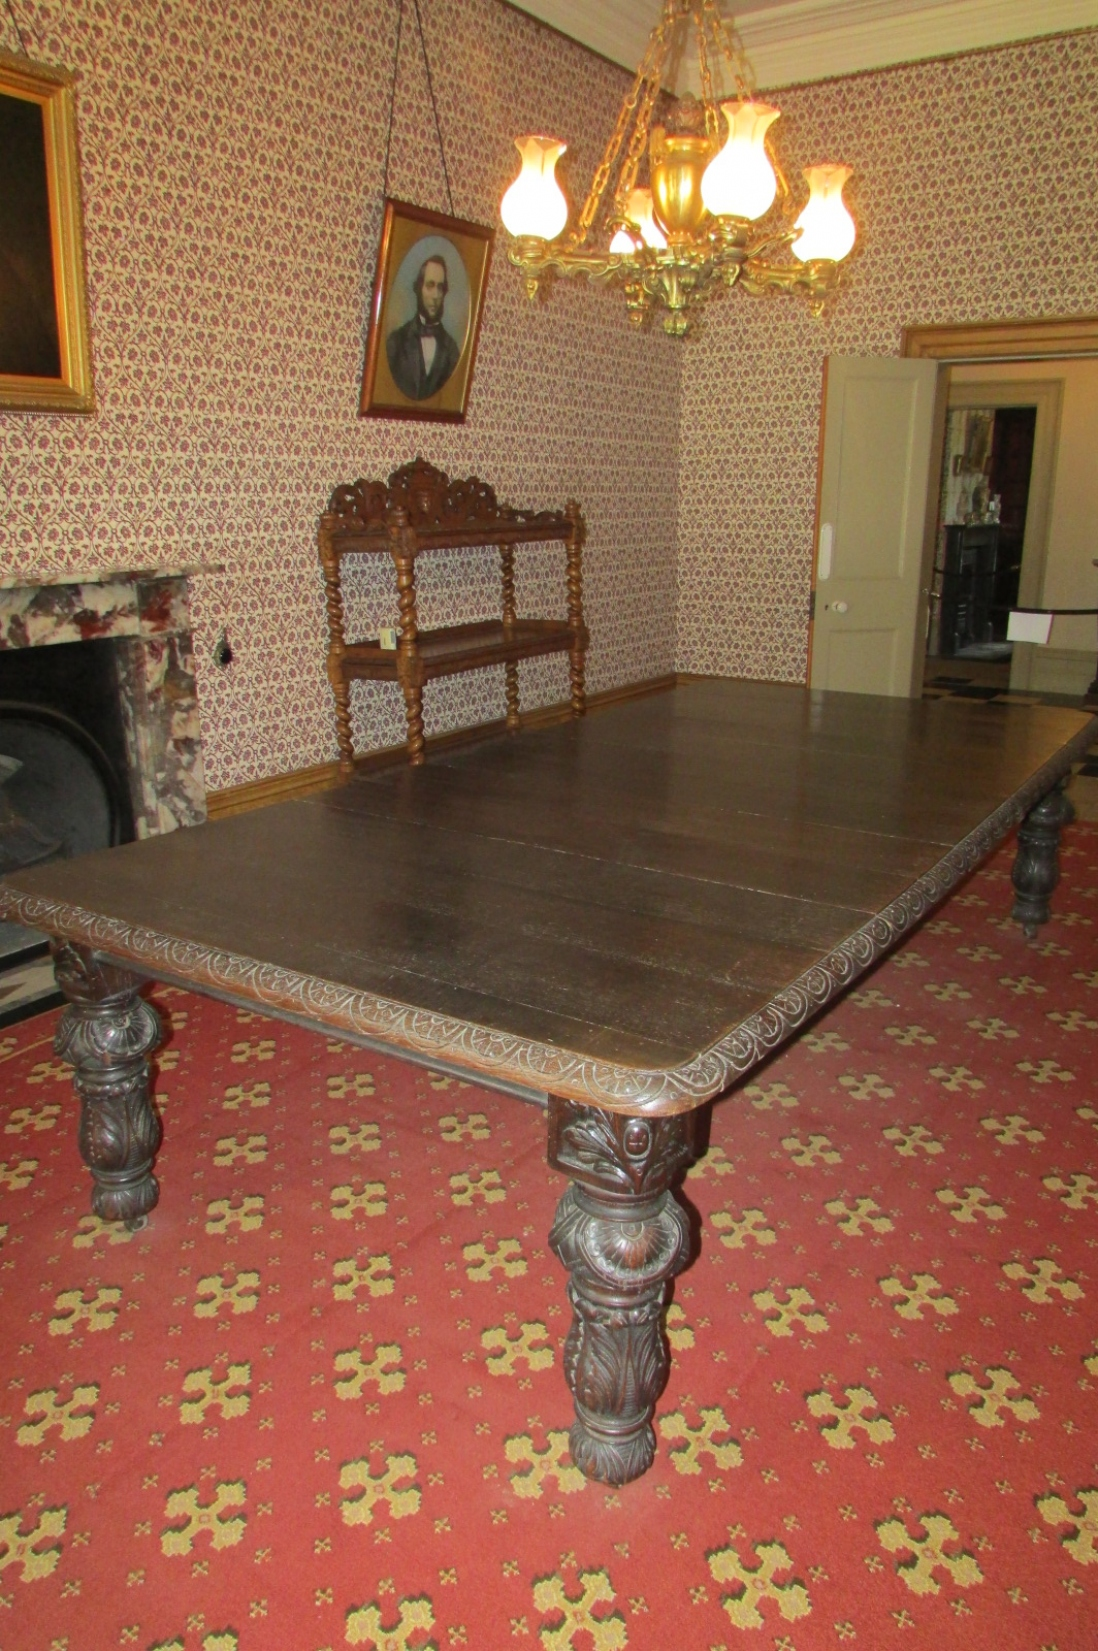 Wooden table and other furniture sitting on red and gold patterned carpet.